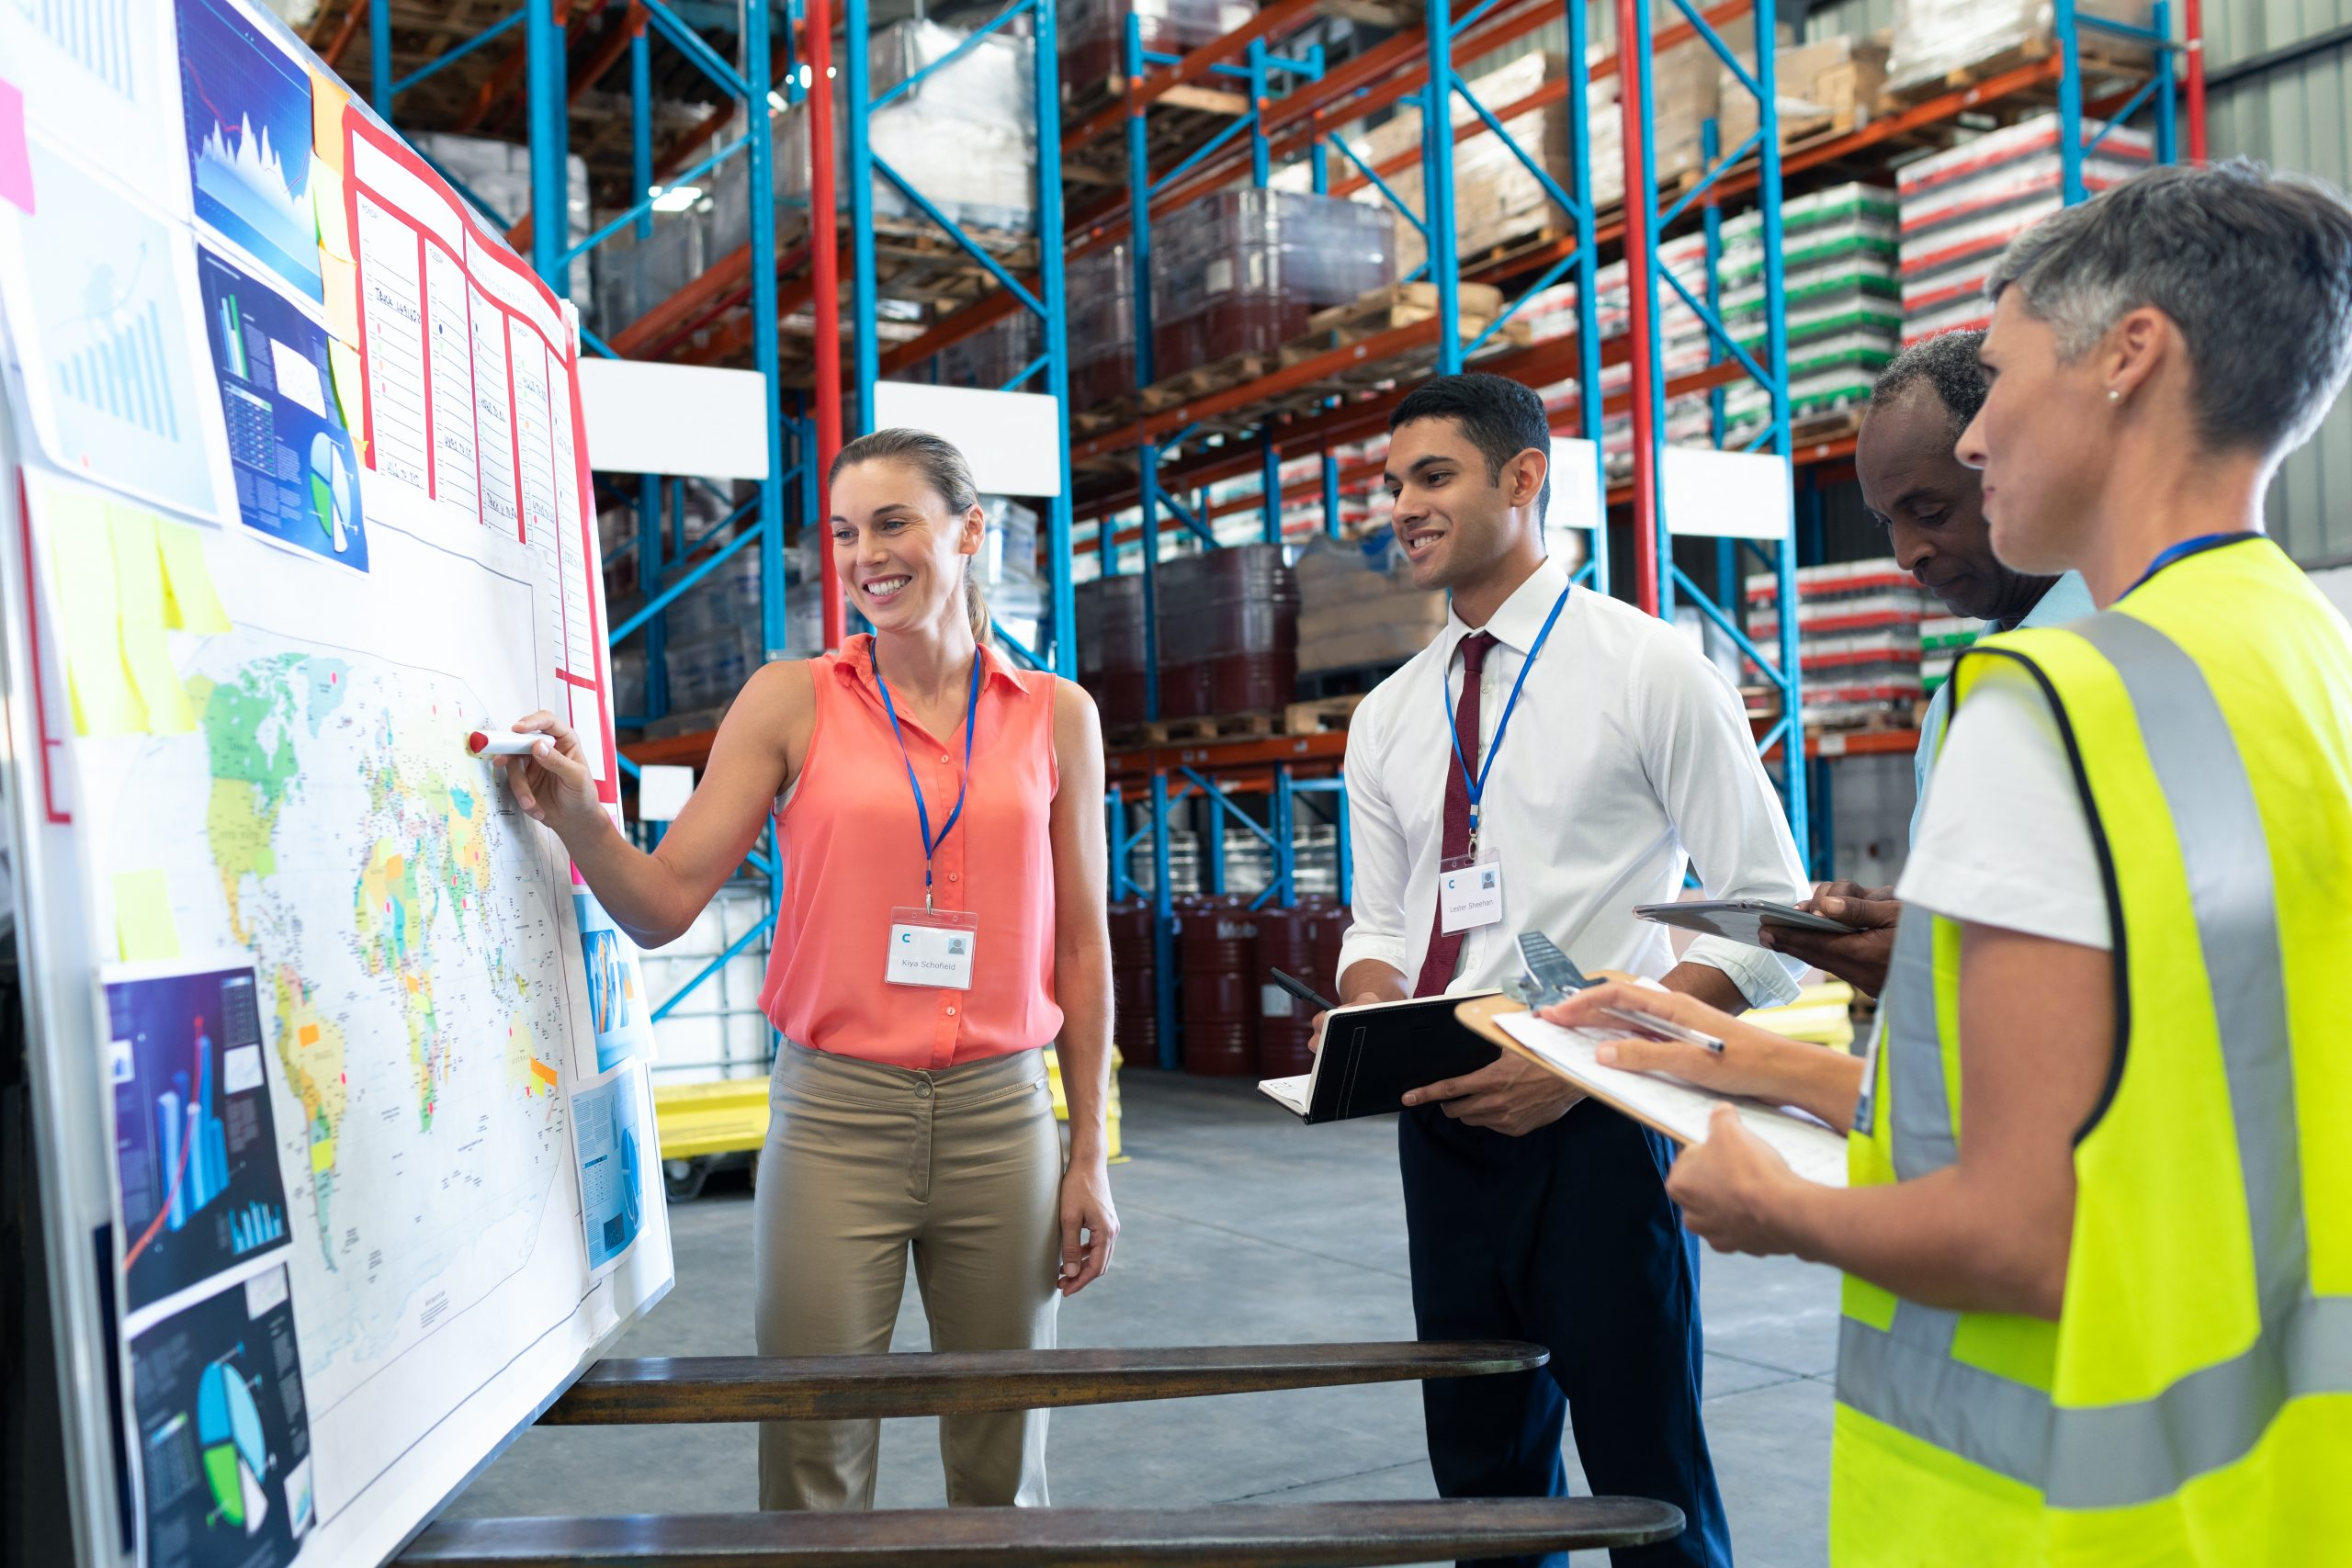 Manufacturers face new training challenges due to Covid-19